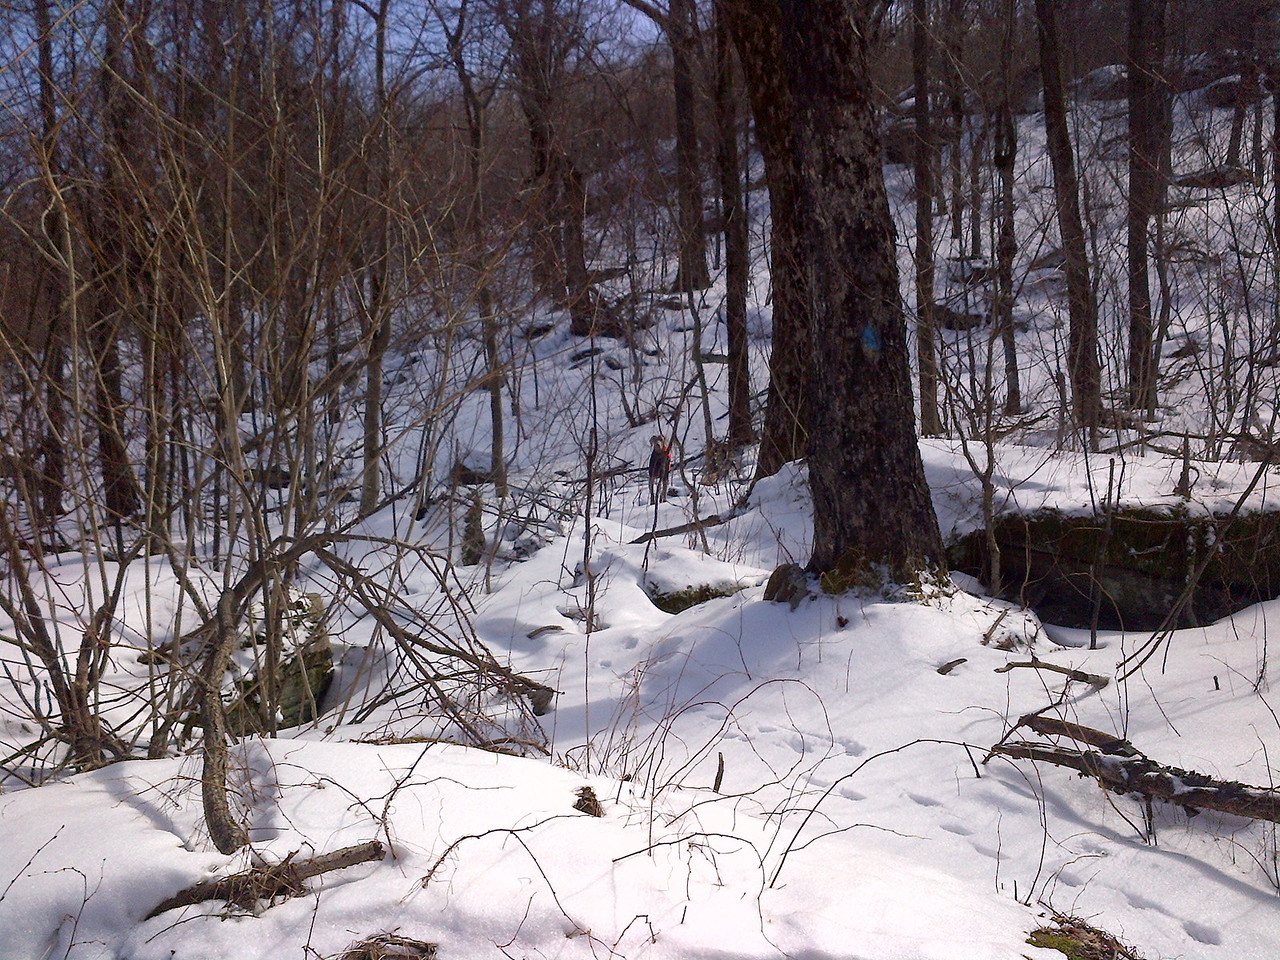 There were a few markings on the trees which really helped out because we were the only hikers in a week and the trail was not visable. Normally this would not be a concern but the snow was thick and you would posthole through the 2 feet of snow if you were not on the packed trail